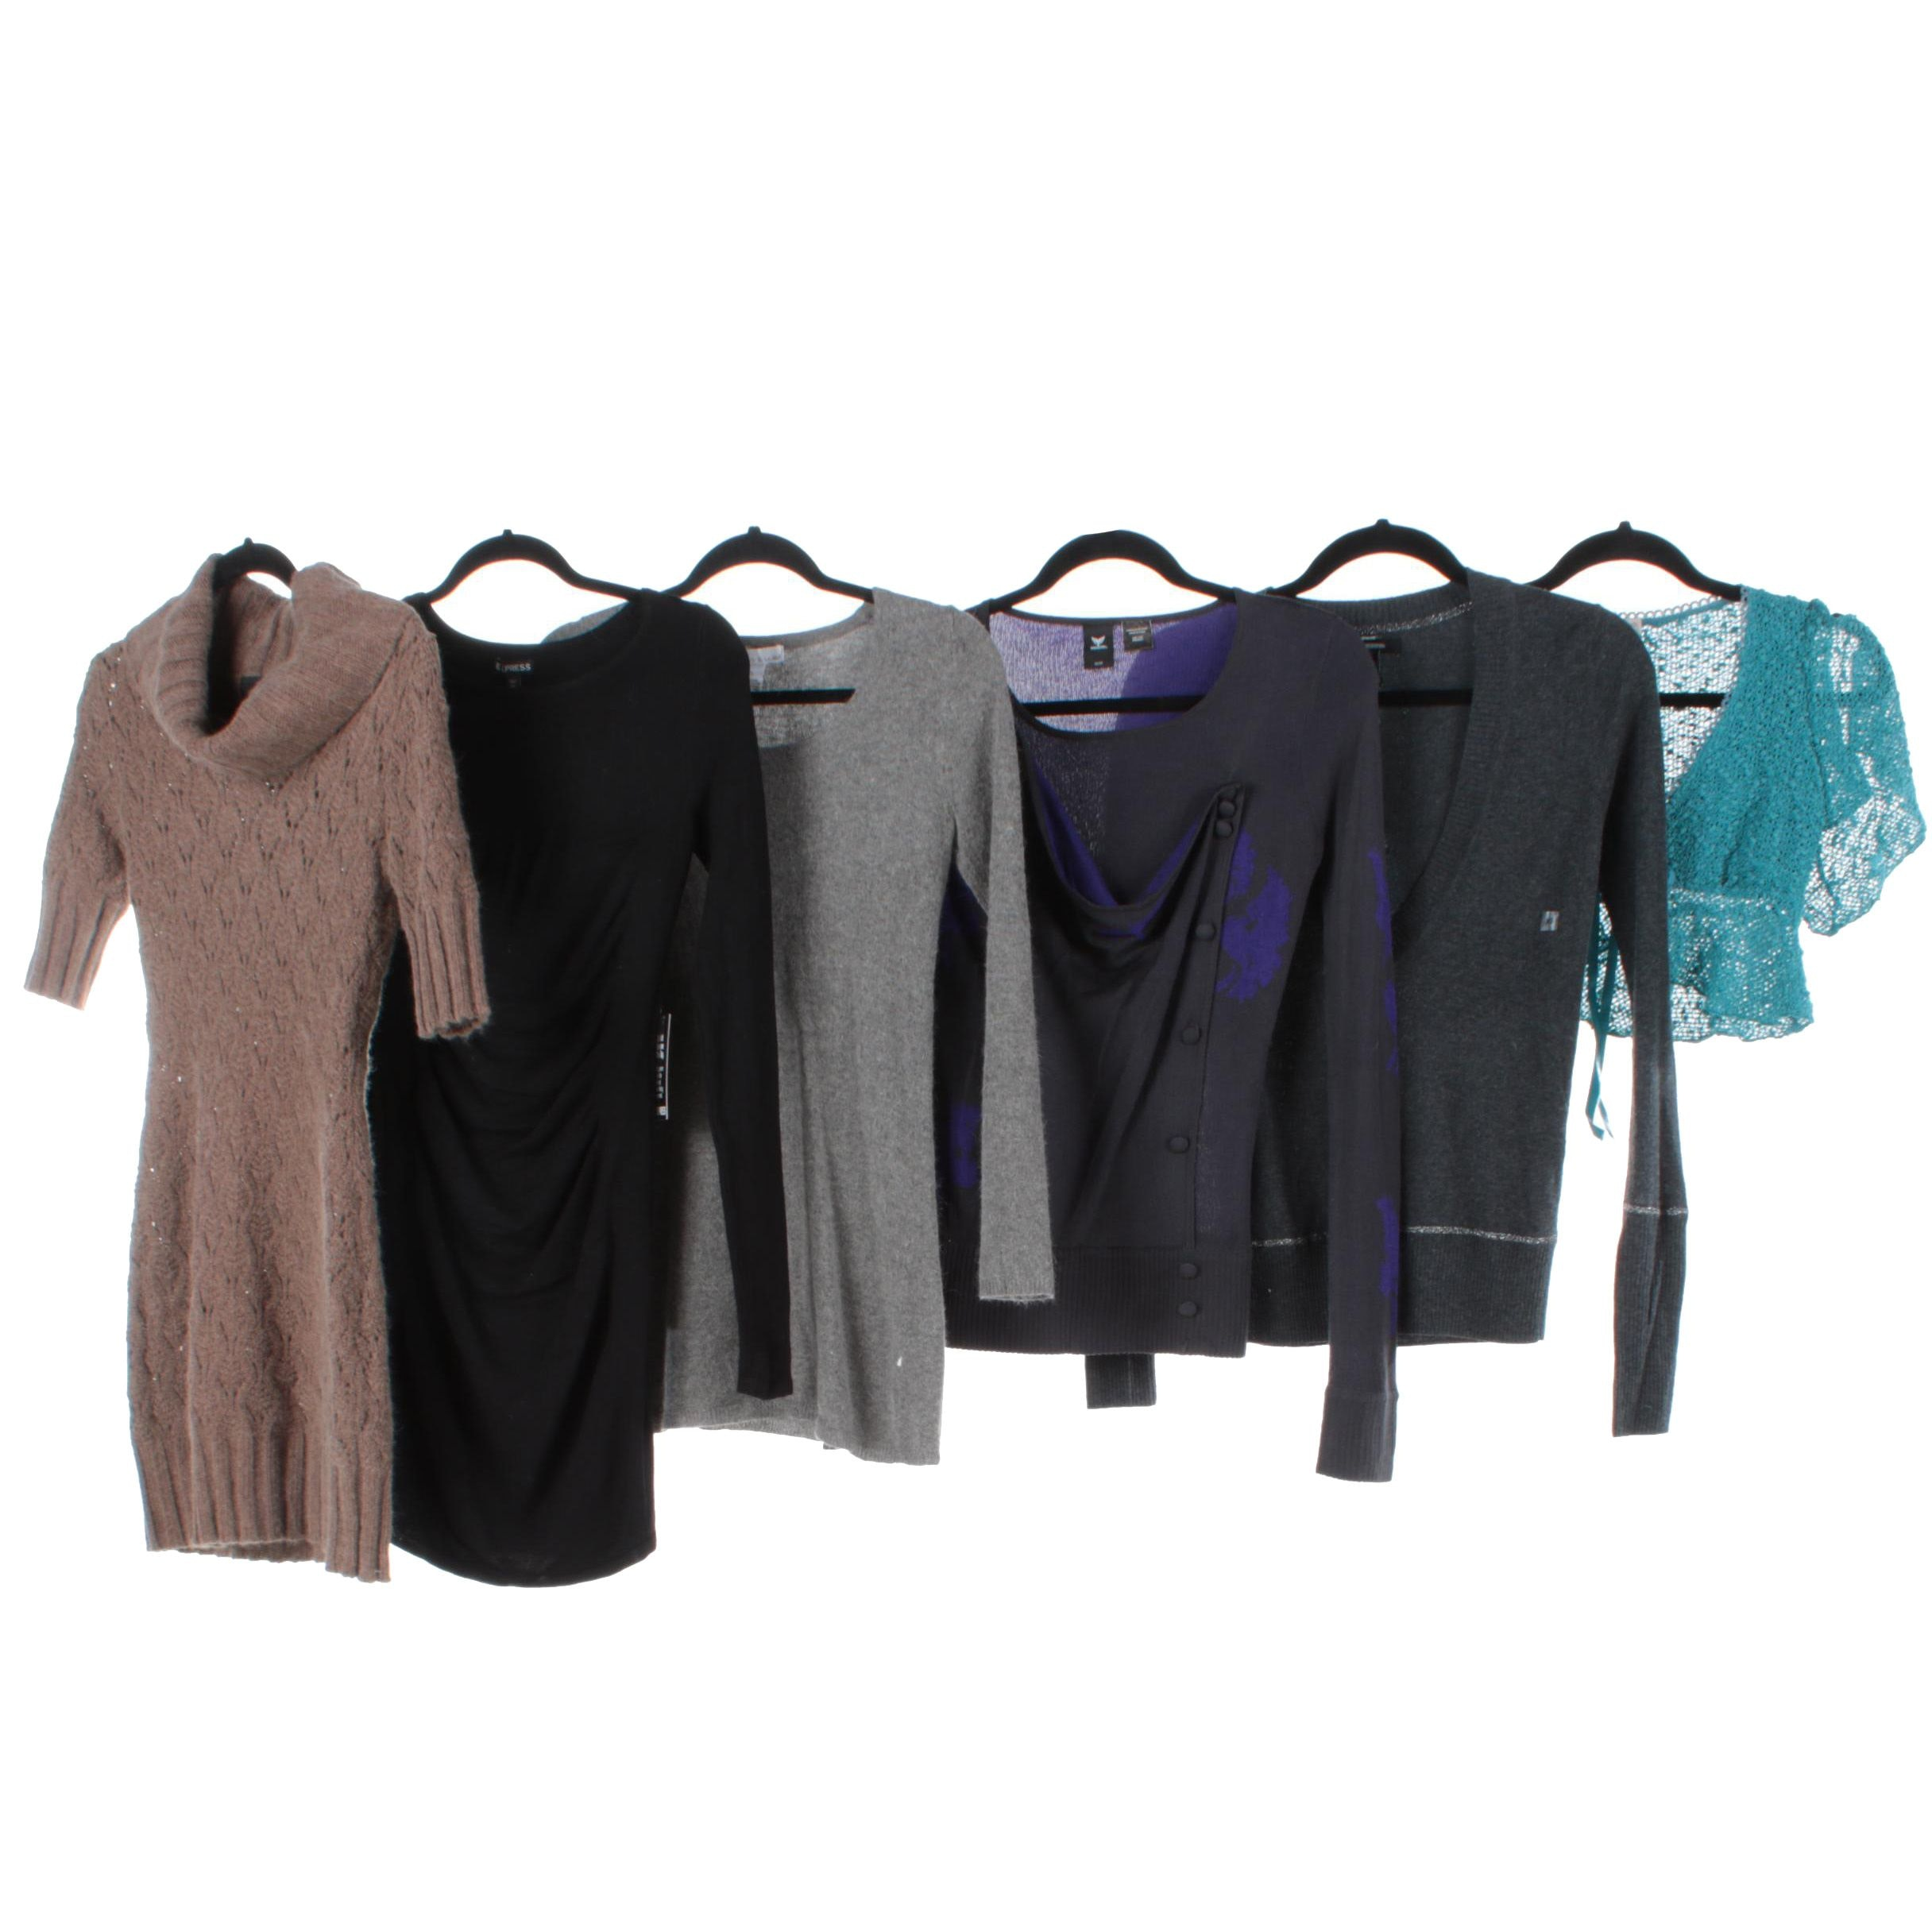 Women's Knit Tops and Dresses Including Express